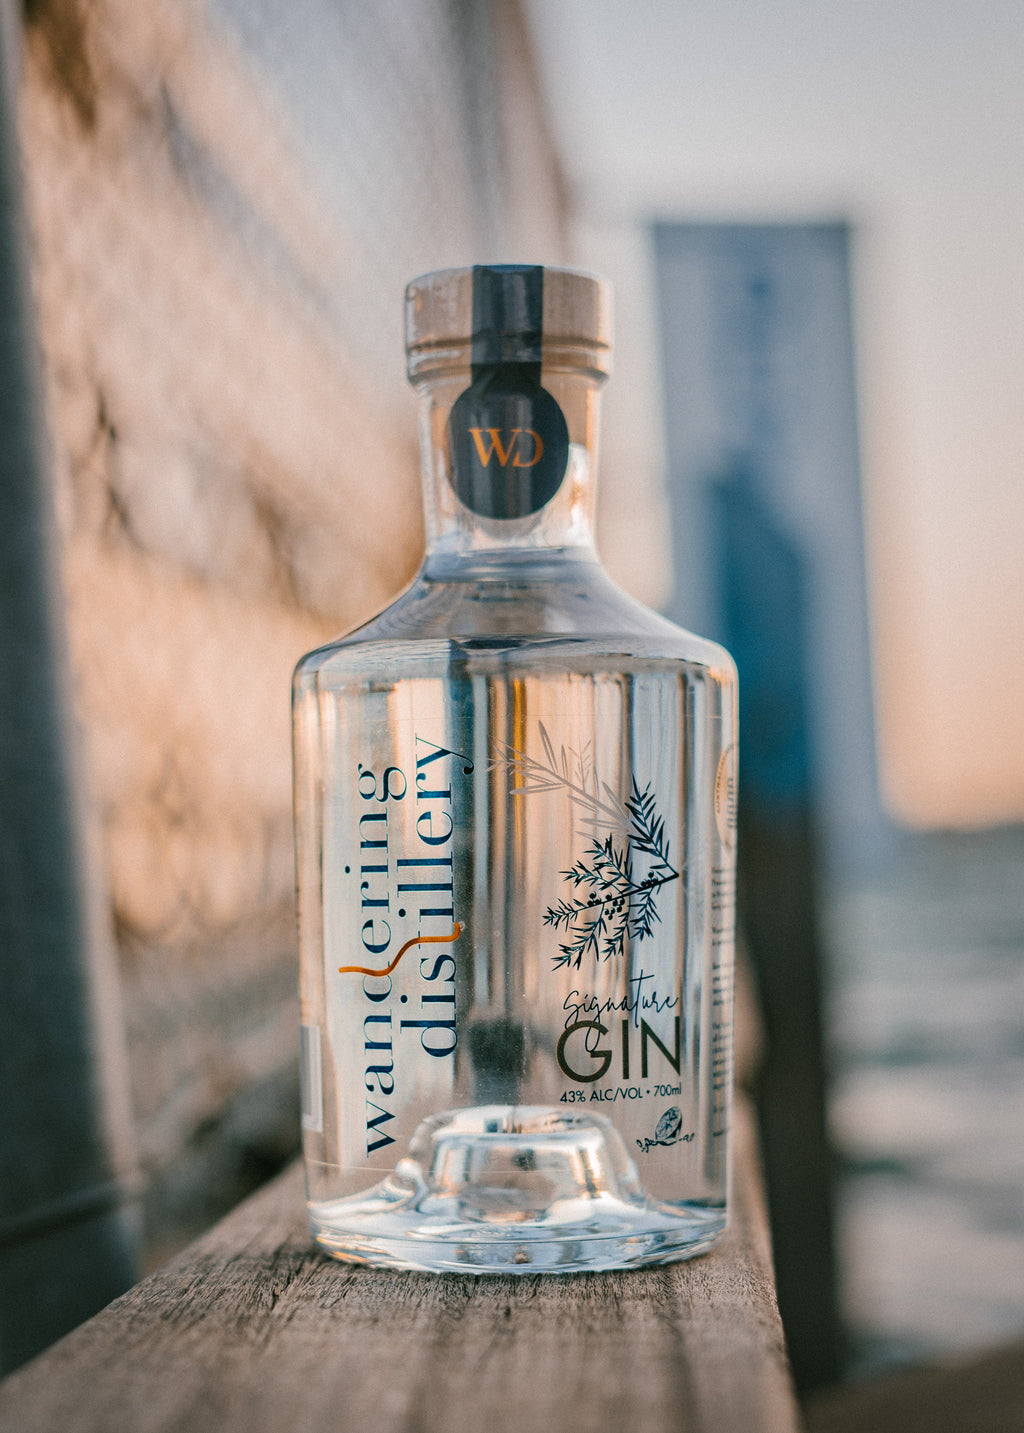 The Gift of Gin